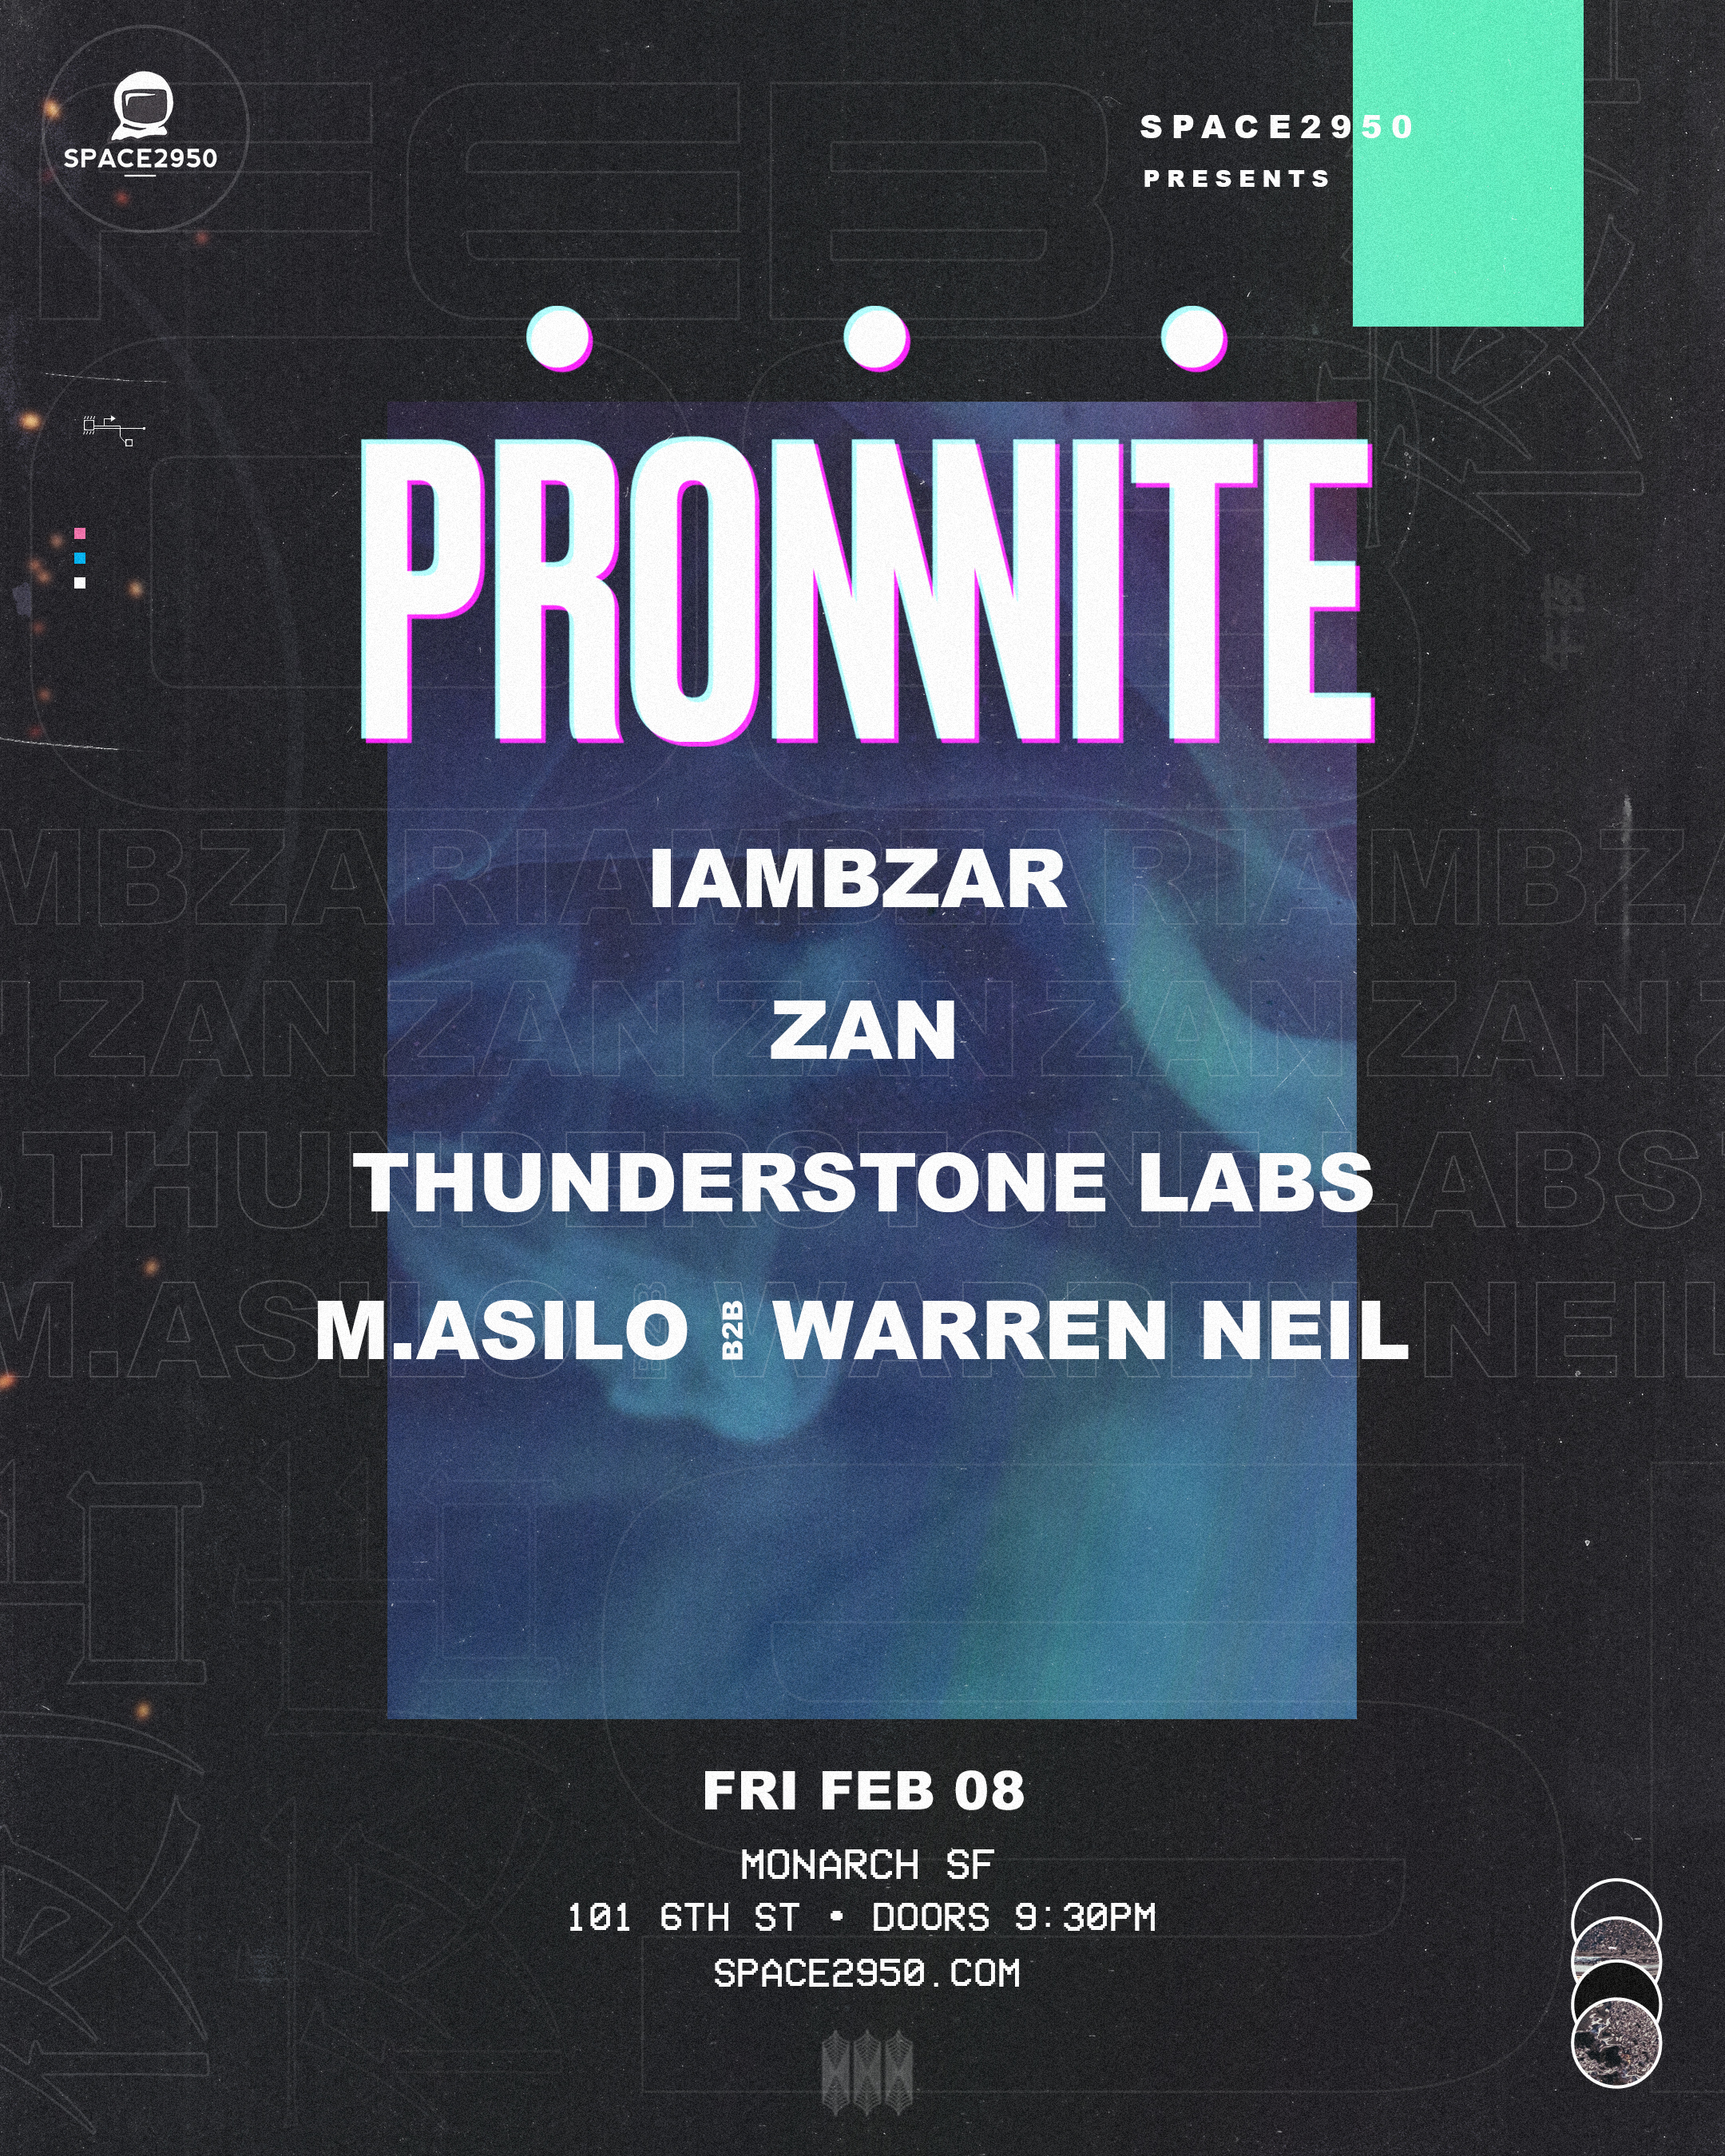 PROMNITE - Flyer (Full Res).jpg